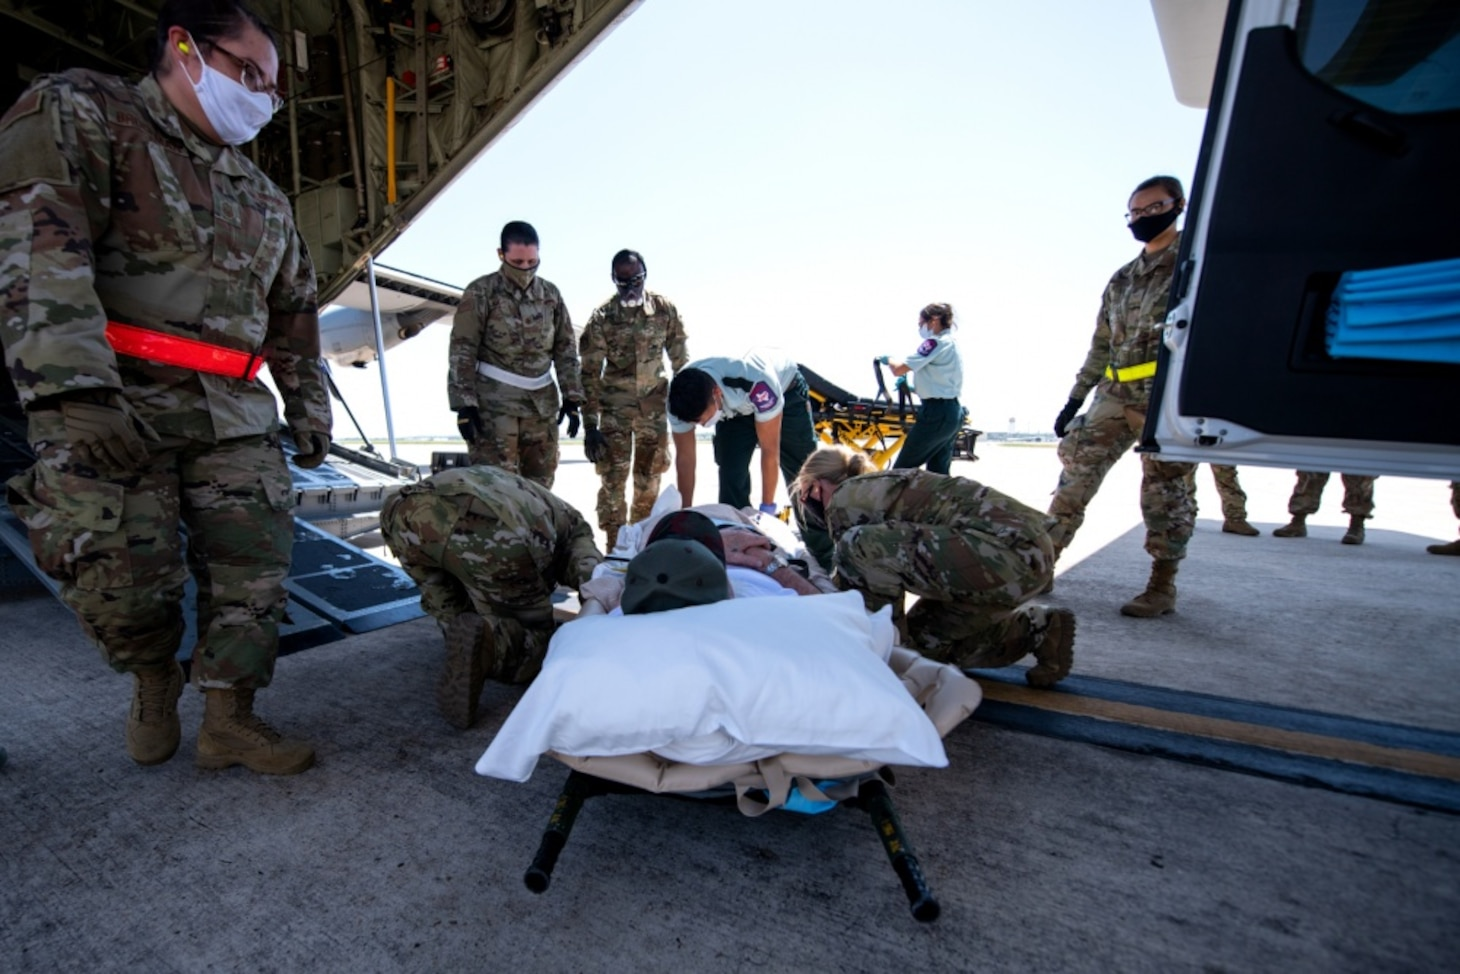 One of eight spinal cord injury patients from Audie Murphy Veterans Affairs Medical Center, South Texas Veterans Health Care System, San Antonio, Texas, is moved onto a U.S. Air Force C-130 aircraft at Joint Base San Antonio-Kelly Airfield, Texas, Tuesday, July 14, 2020, for a brief flight to Dallas Love Field Airport, Texas.